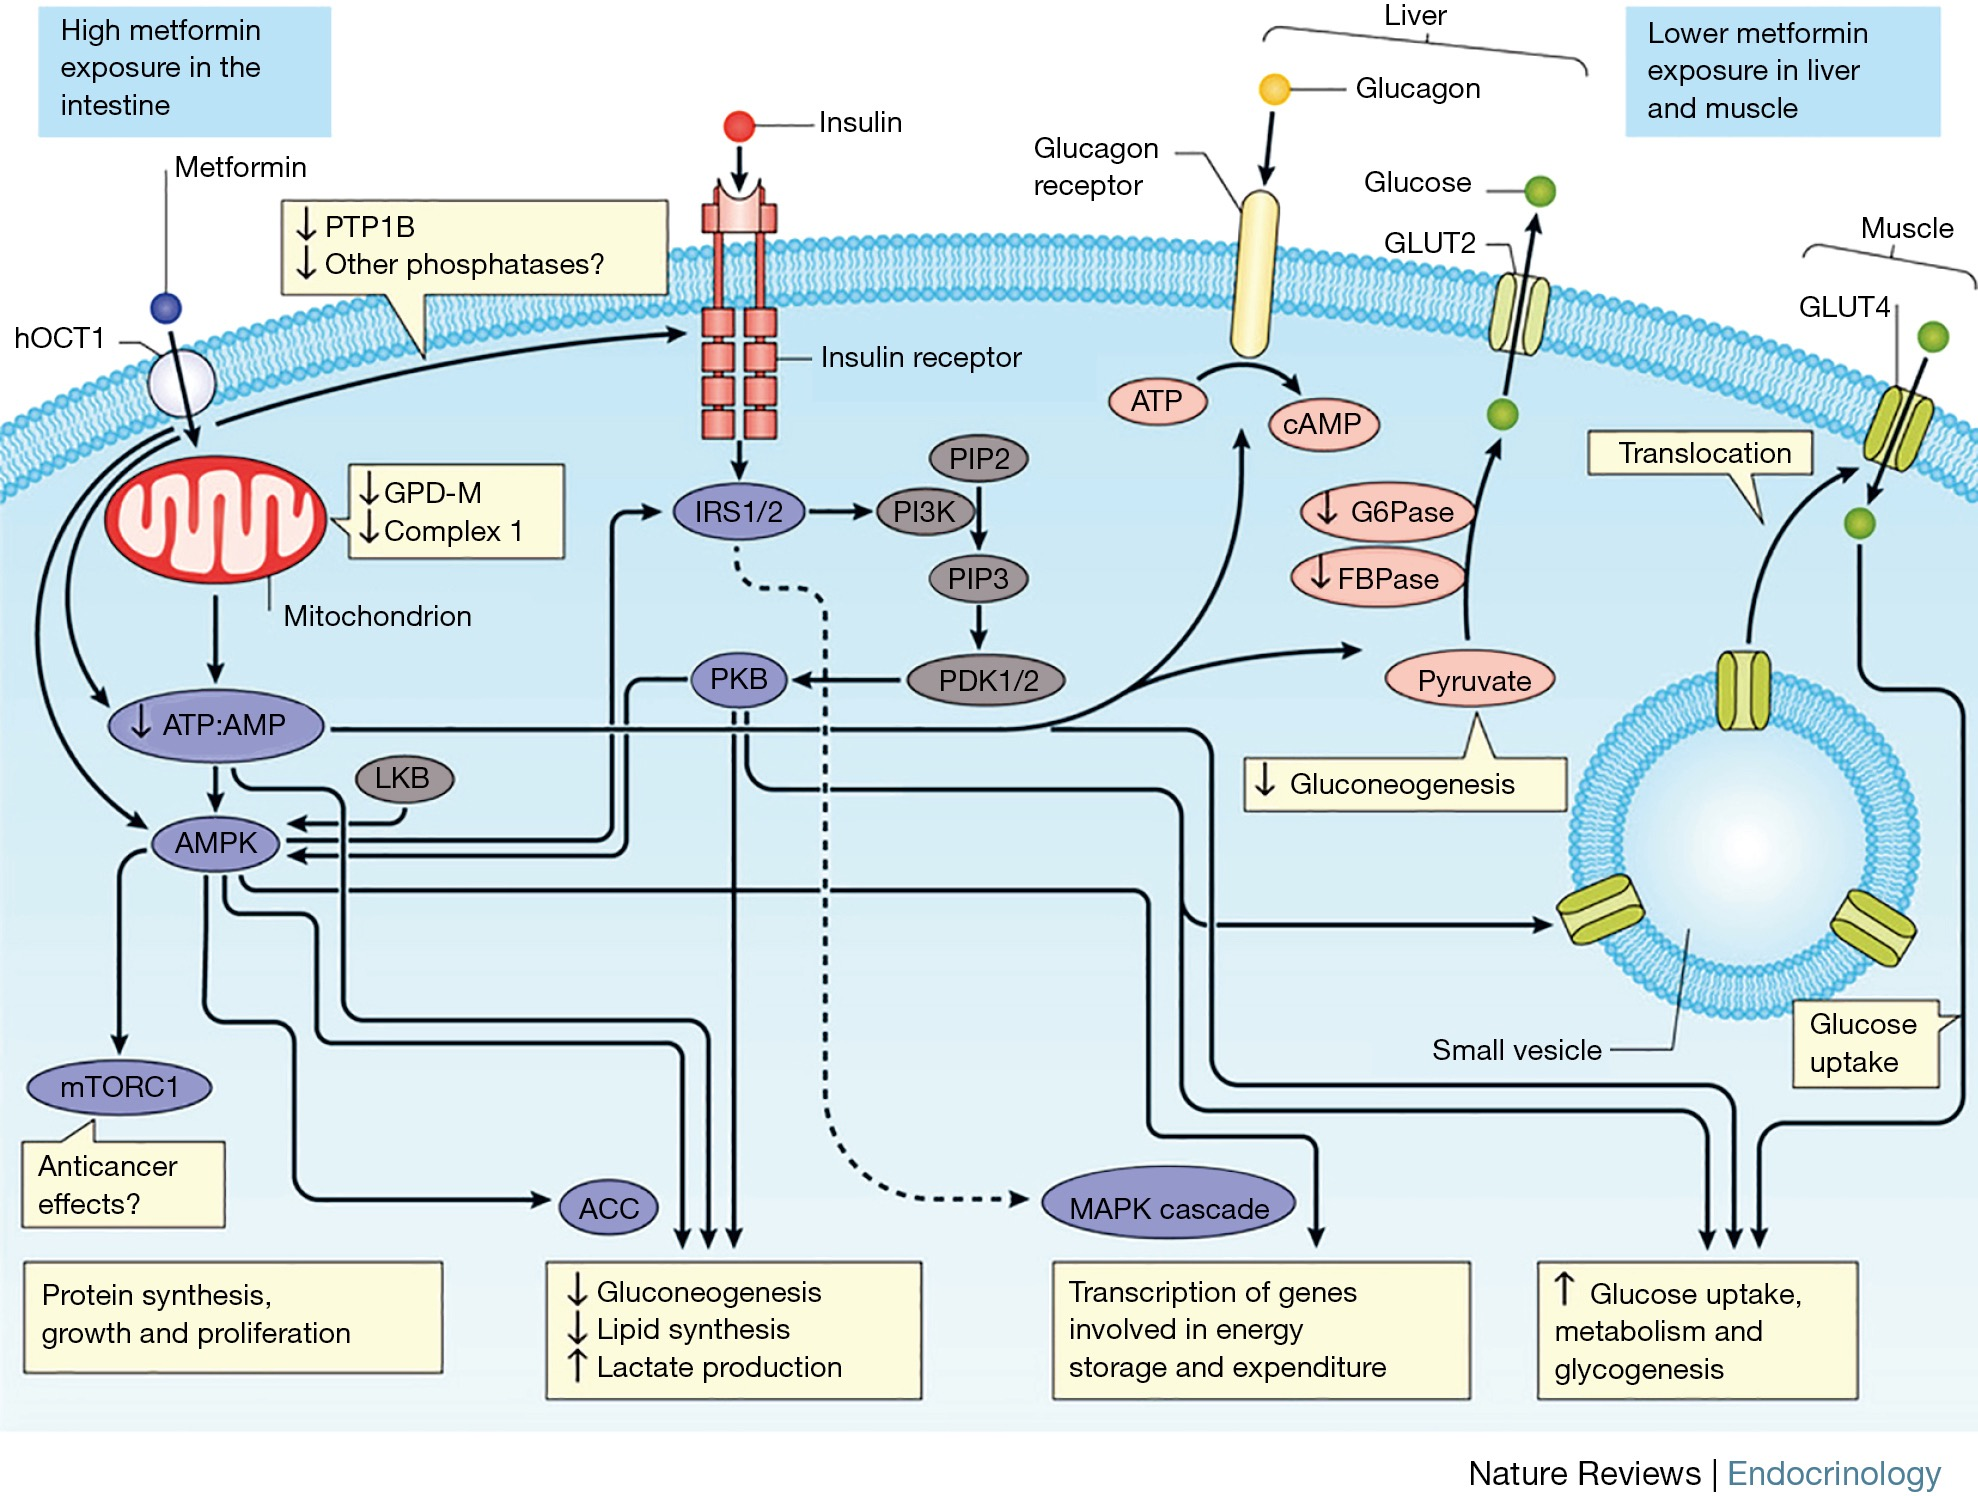 Effects of metformin on endothelial health and erectile dysfunction